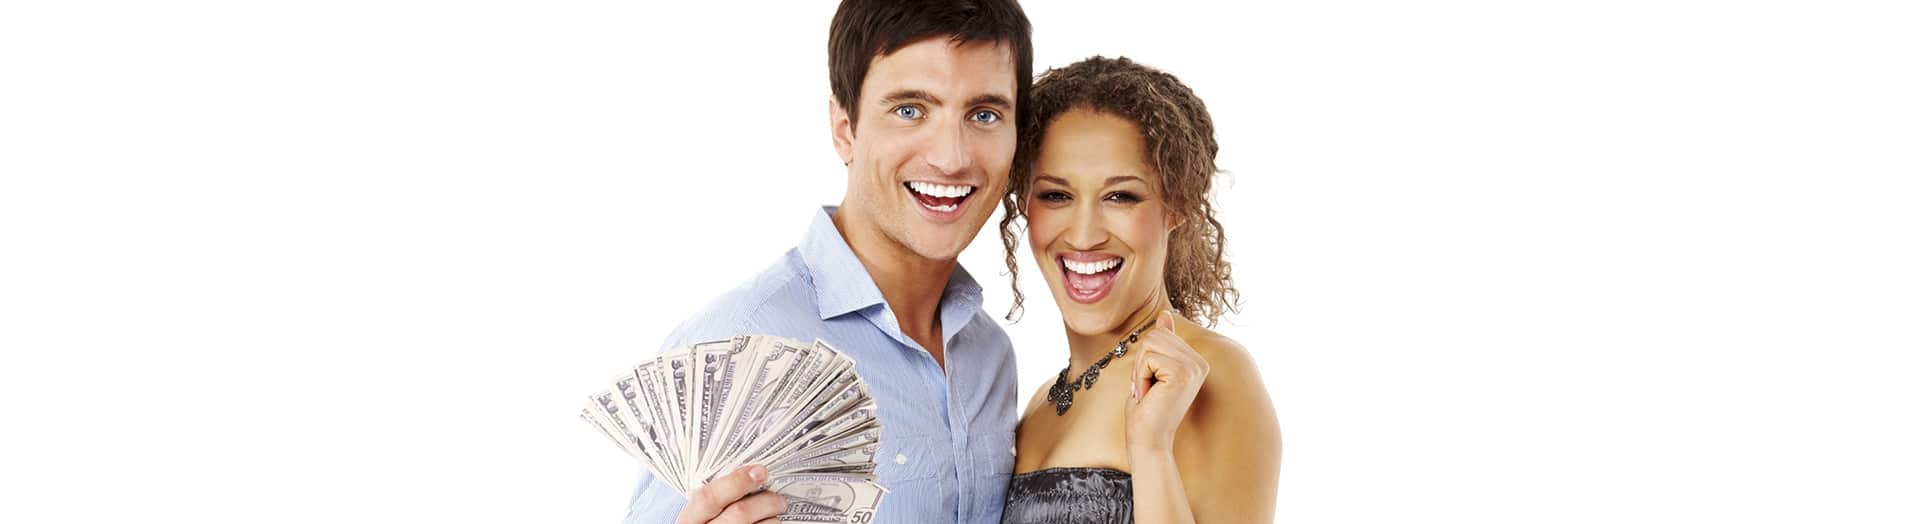 How Should you Spend Your Money After Winning $100,000? - Debt.com